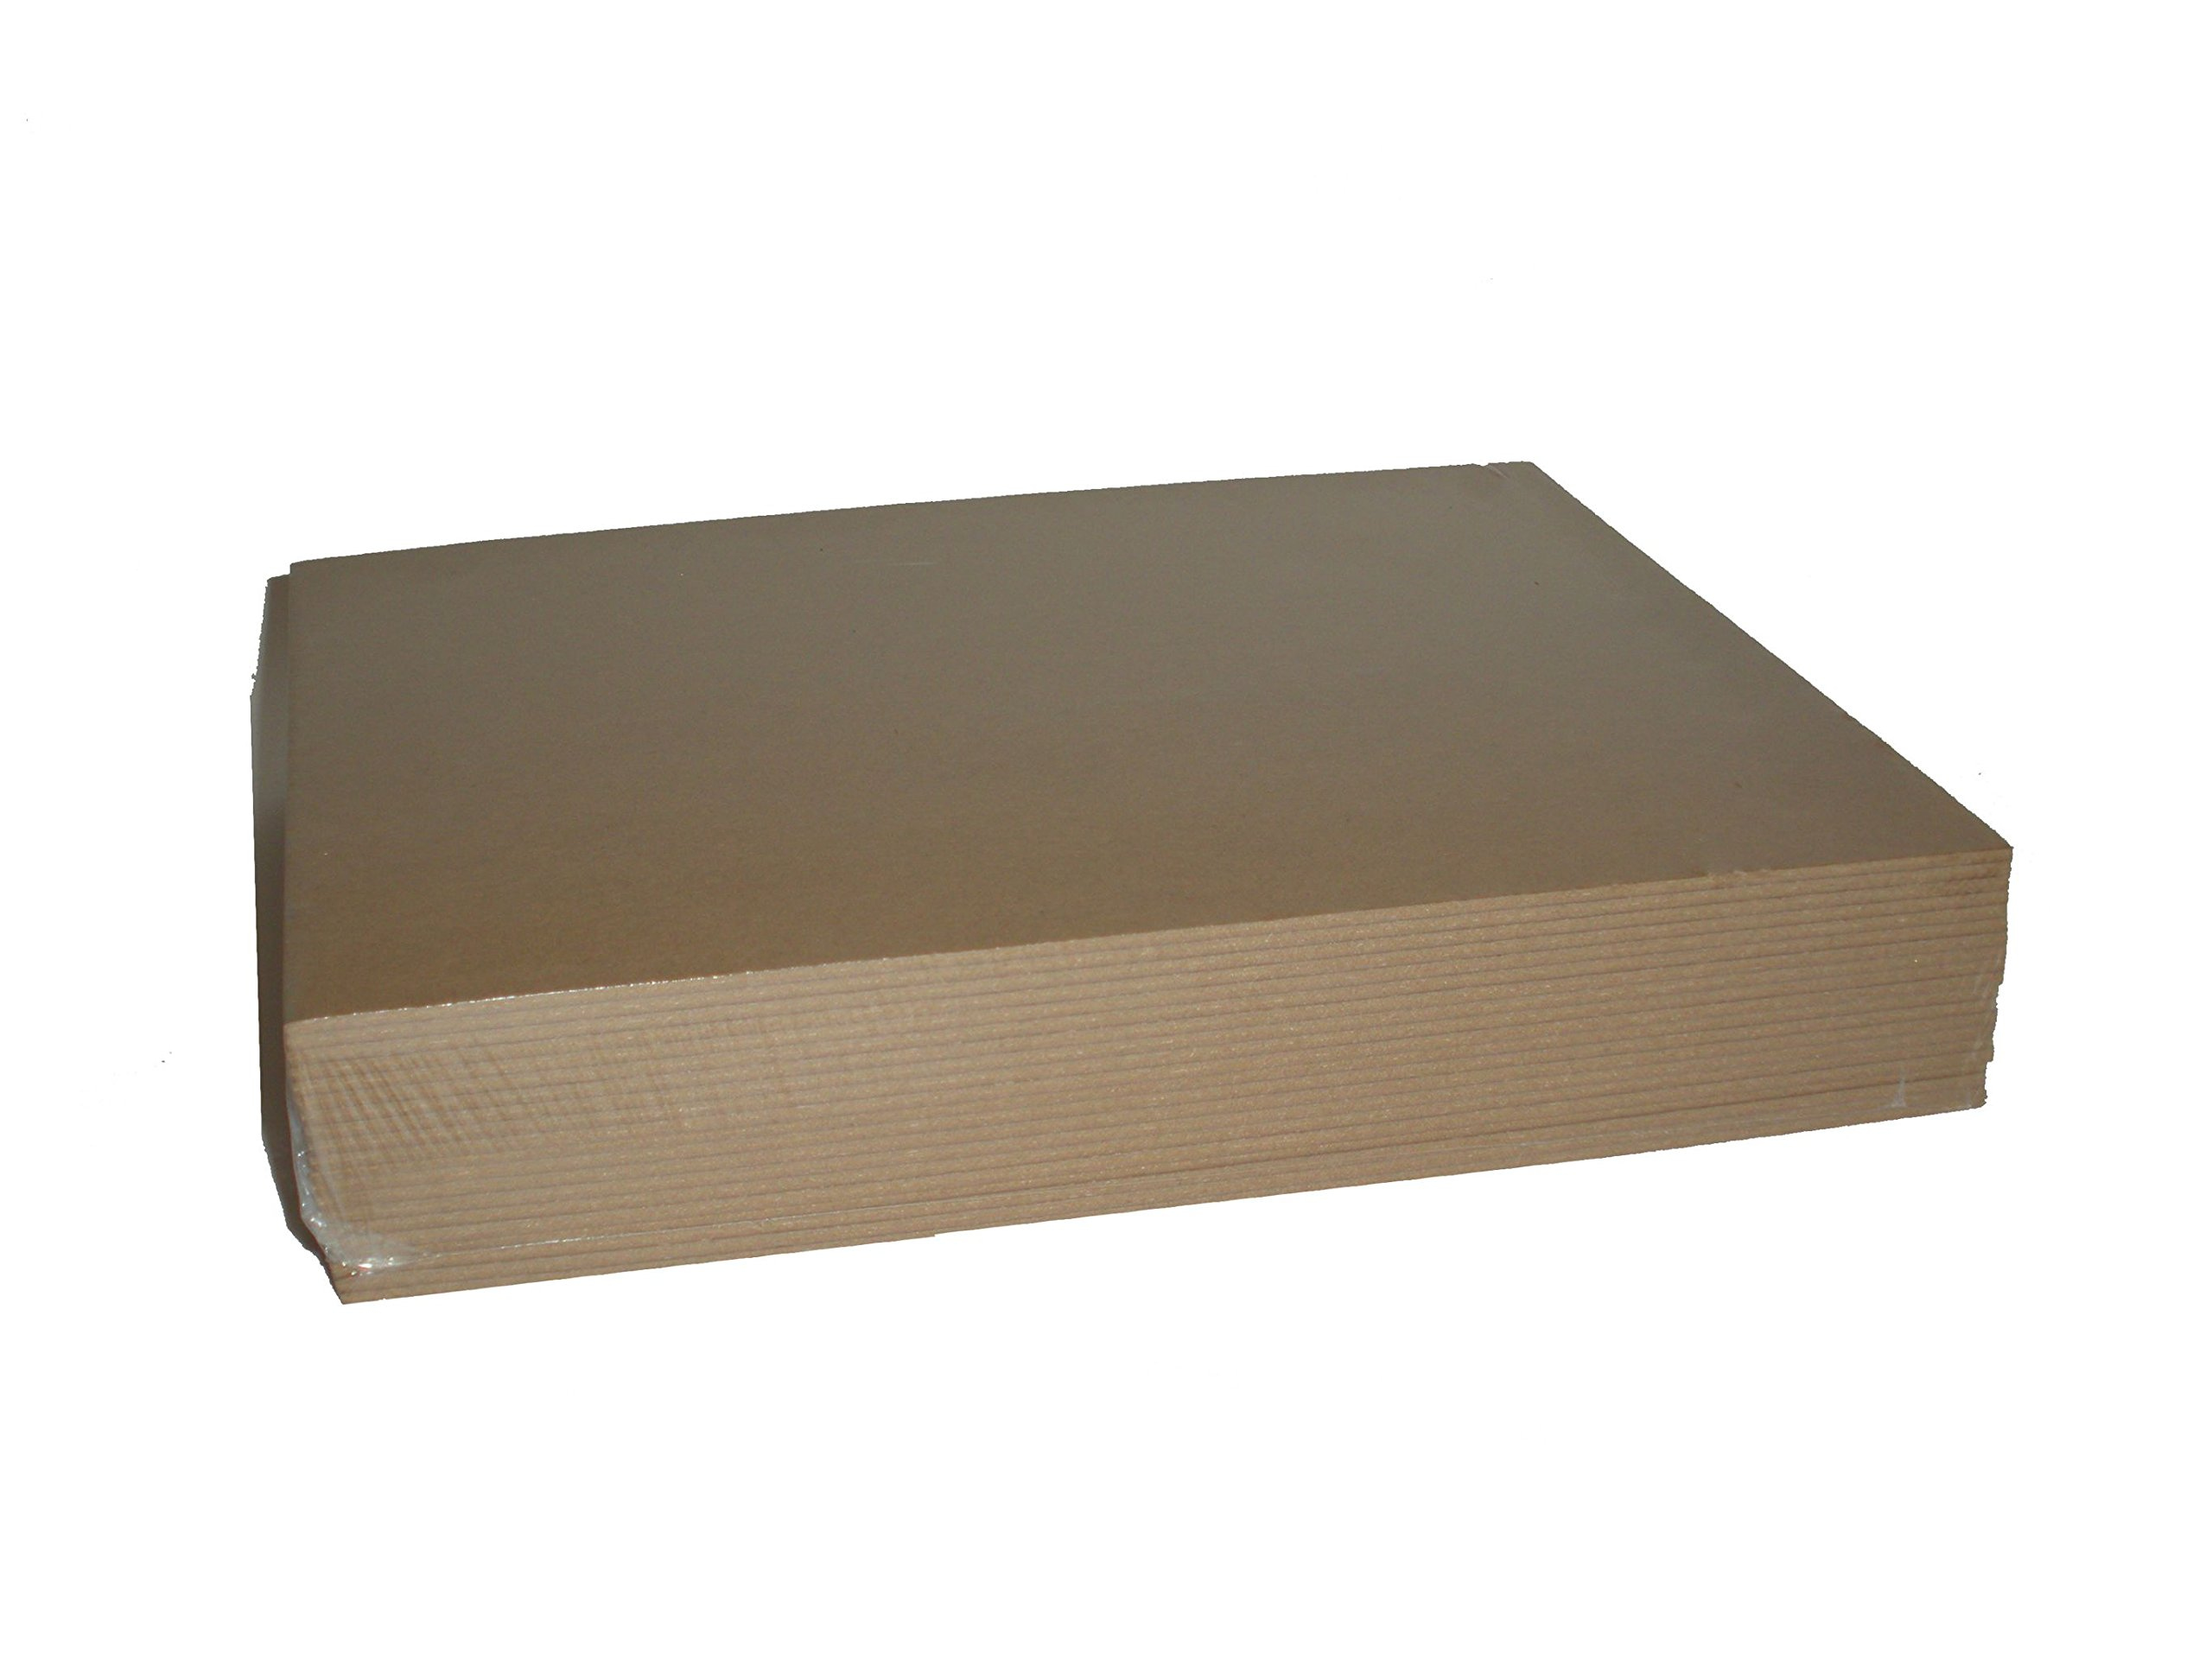 Brown Chipboard 100 Point Extra Thick 8.5 x 11 Inches, .100 Caliper Heavy Cardboard 2.54 mm Thick